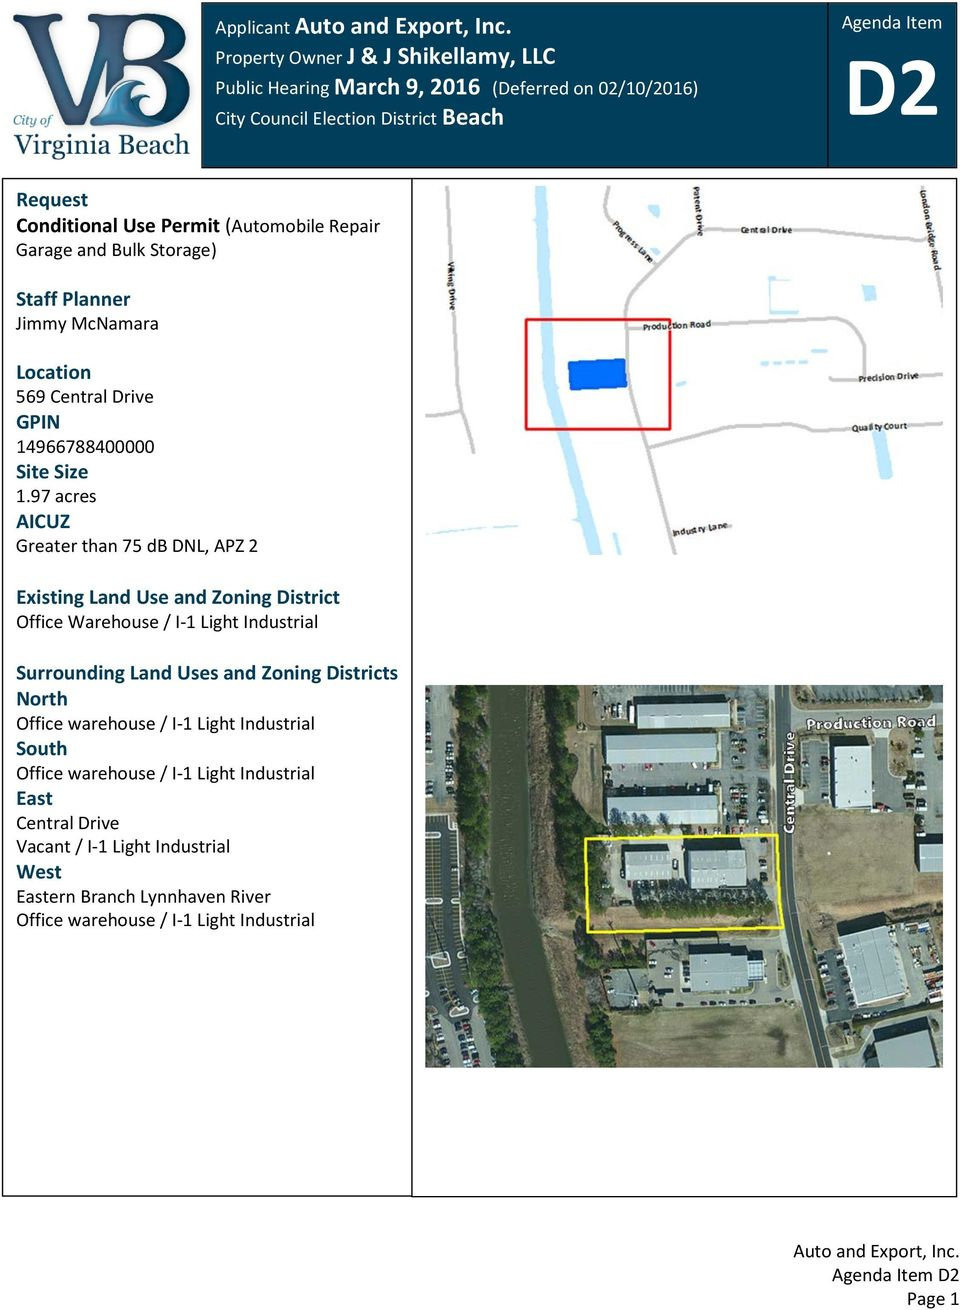 97 acres AICUZ Greater than 75 db DNL, APZ 2 Existing Land Use and Zoning District Office Warehouse / I-1 Light Industrial Surrounding Land Uses and Zoning Districts North